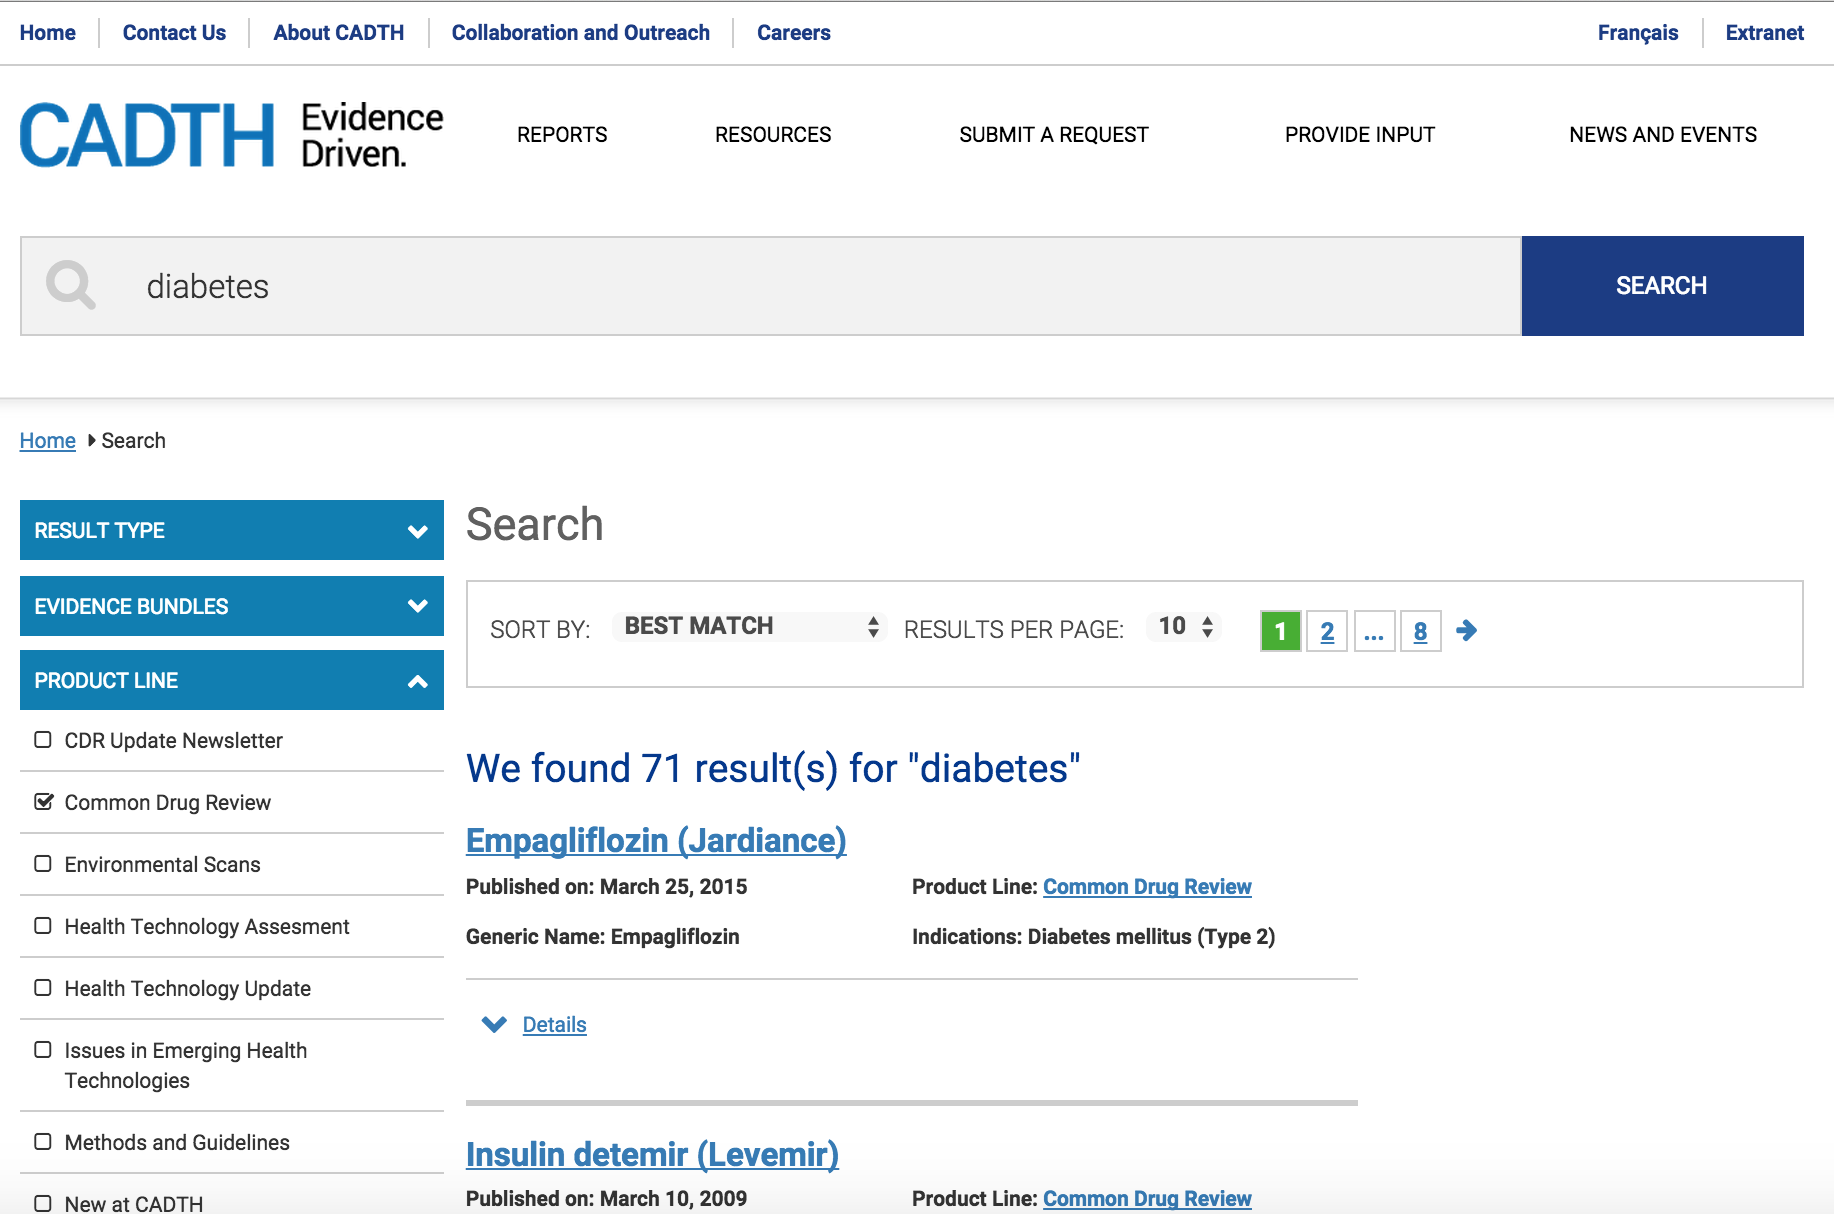 CADTH website search screen shot